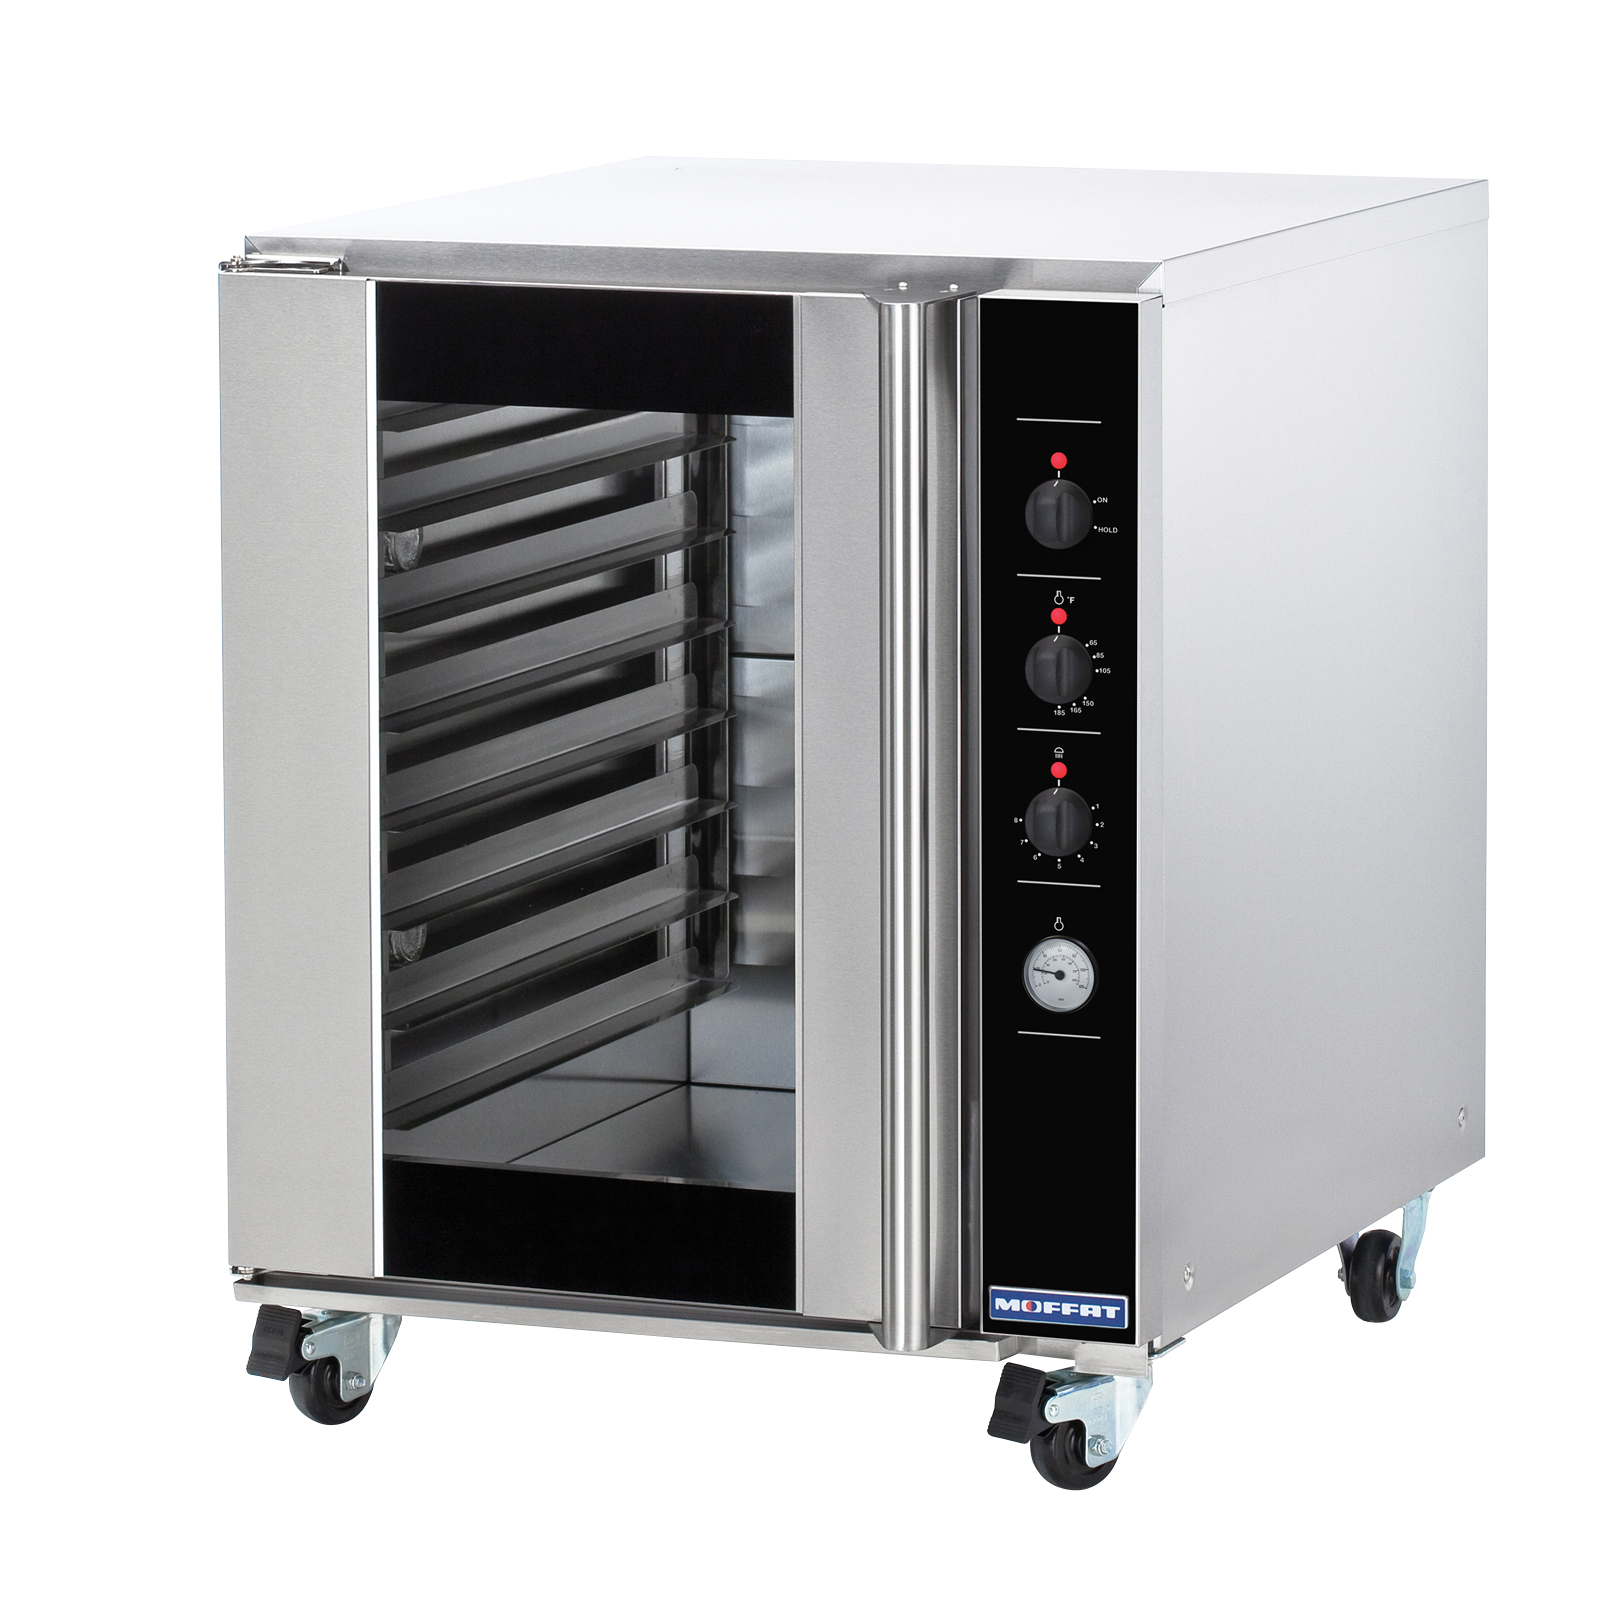 Moffat P8m Electric Proofer Holding Cabinet 8 Tray